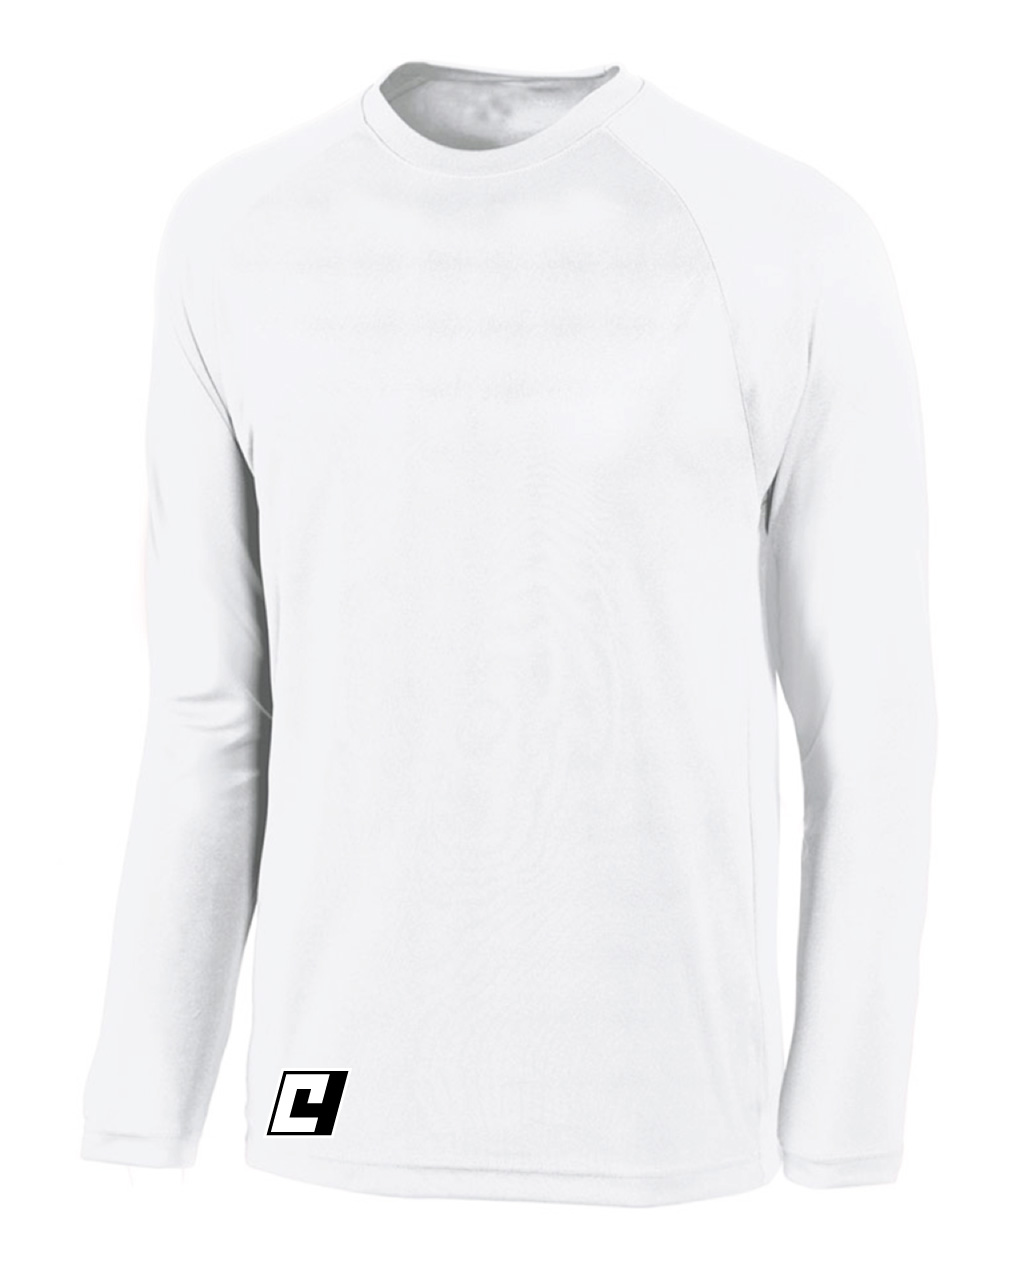 C4 long sleeve basketball shooting shirt in white by Code Four Athletics